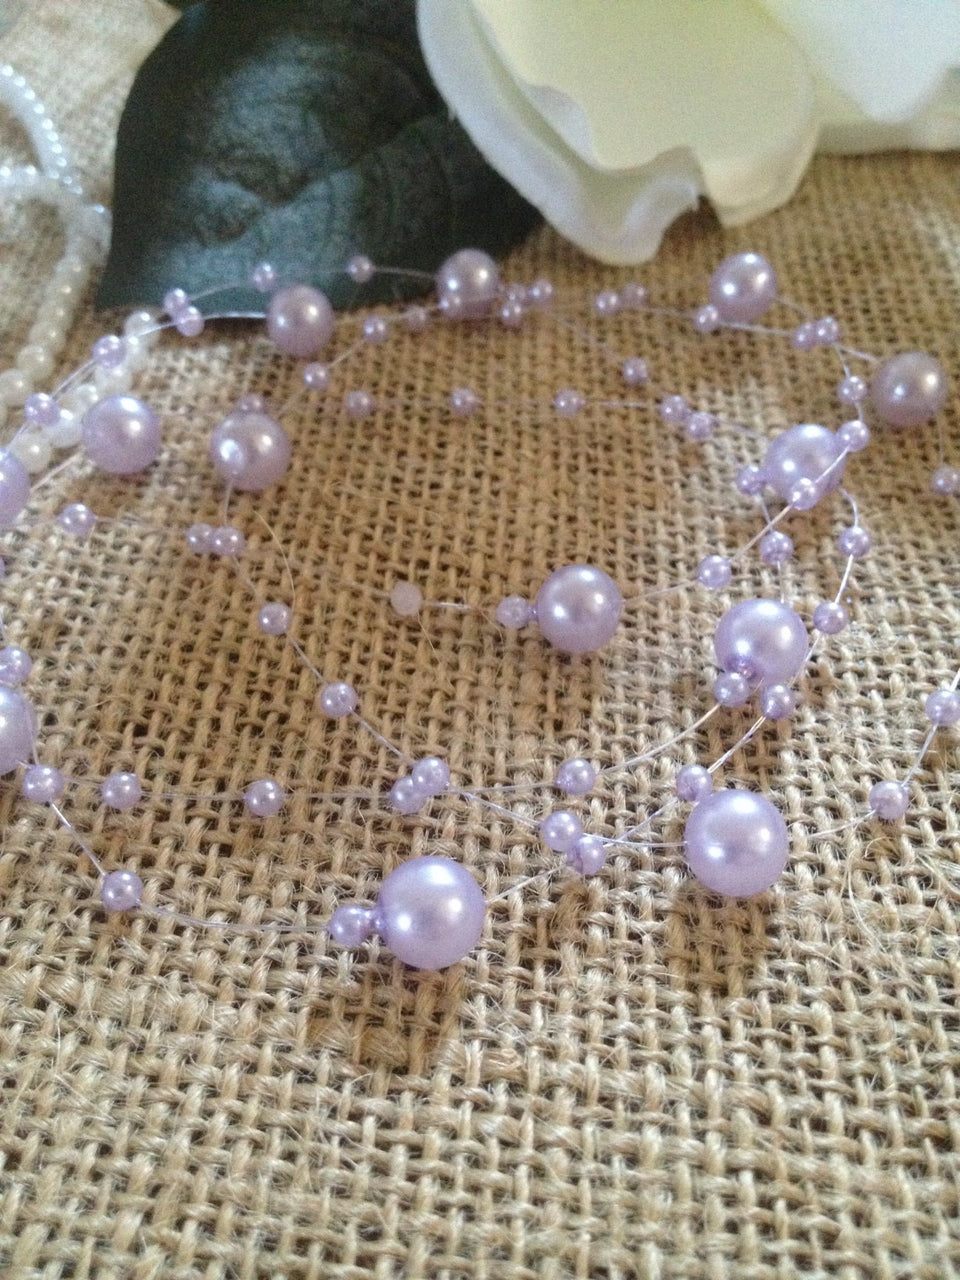 8mm & 3mm Light Purple Pearl Beads Garland -Wedding Decoration, Special Events, Trims Available in: 1yd/3yd/5yd/10yd/1roll